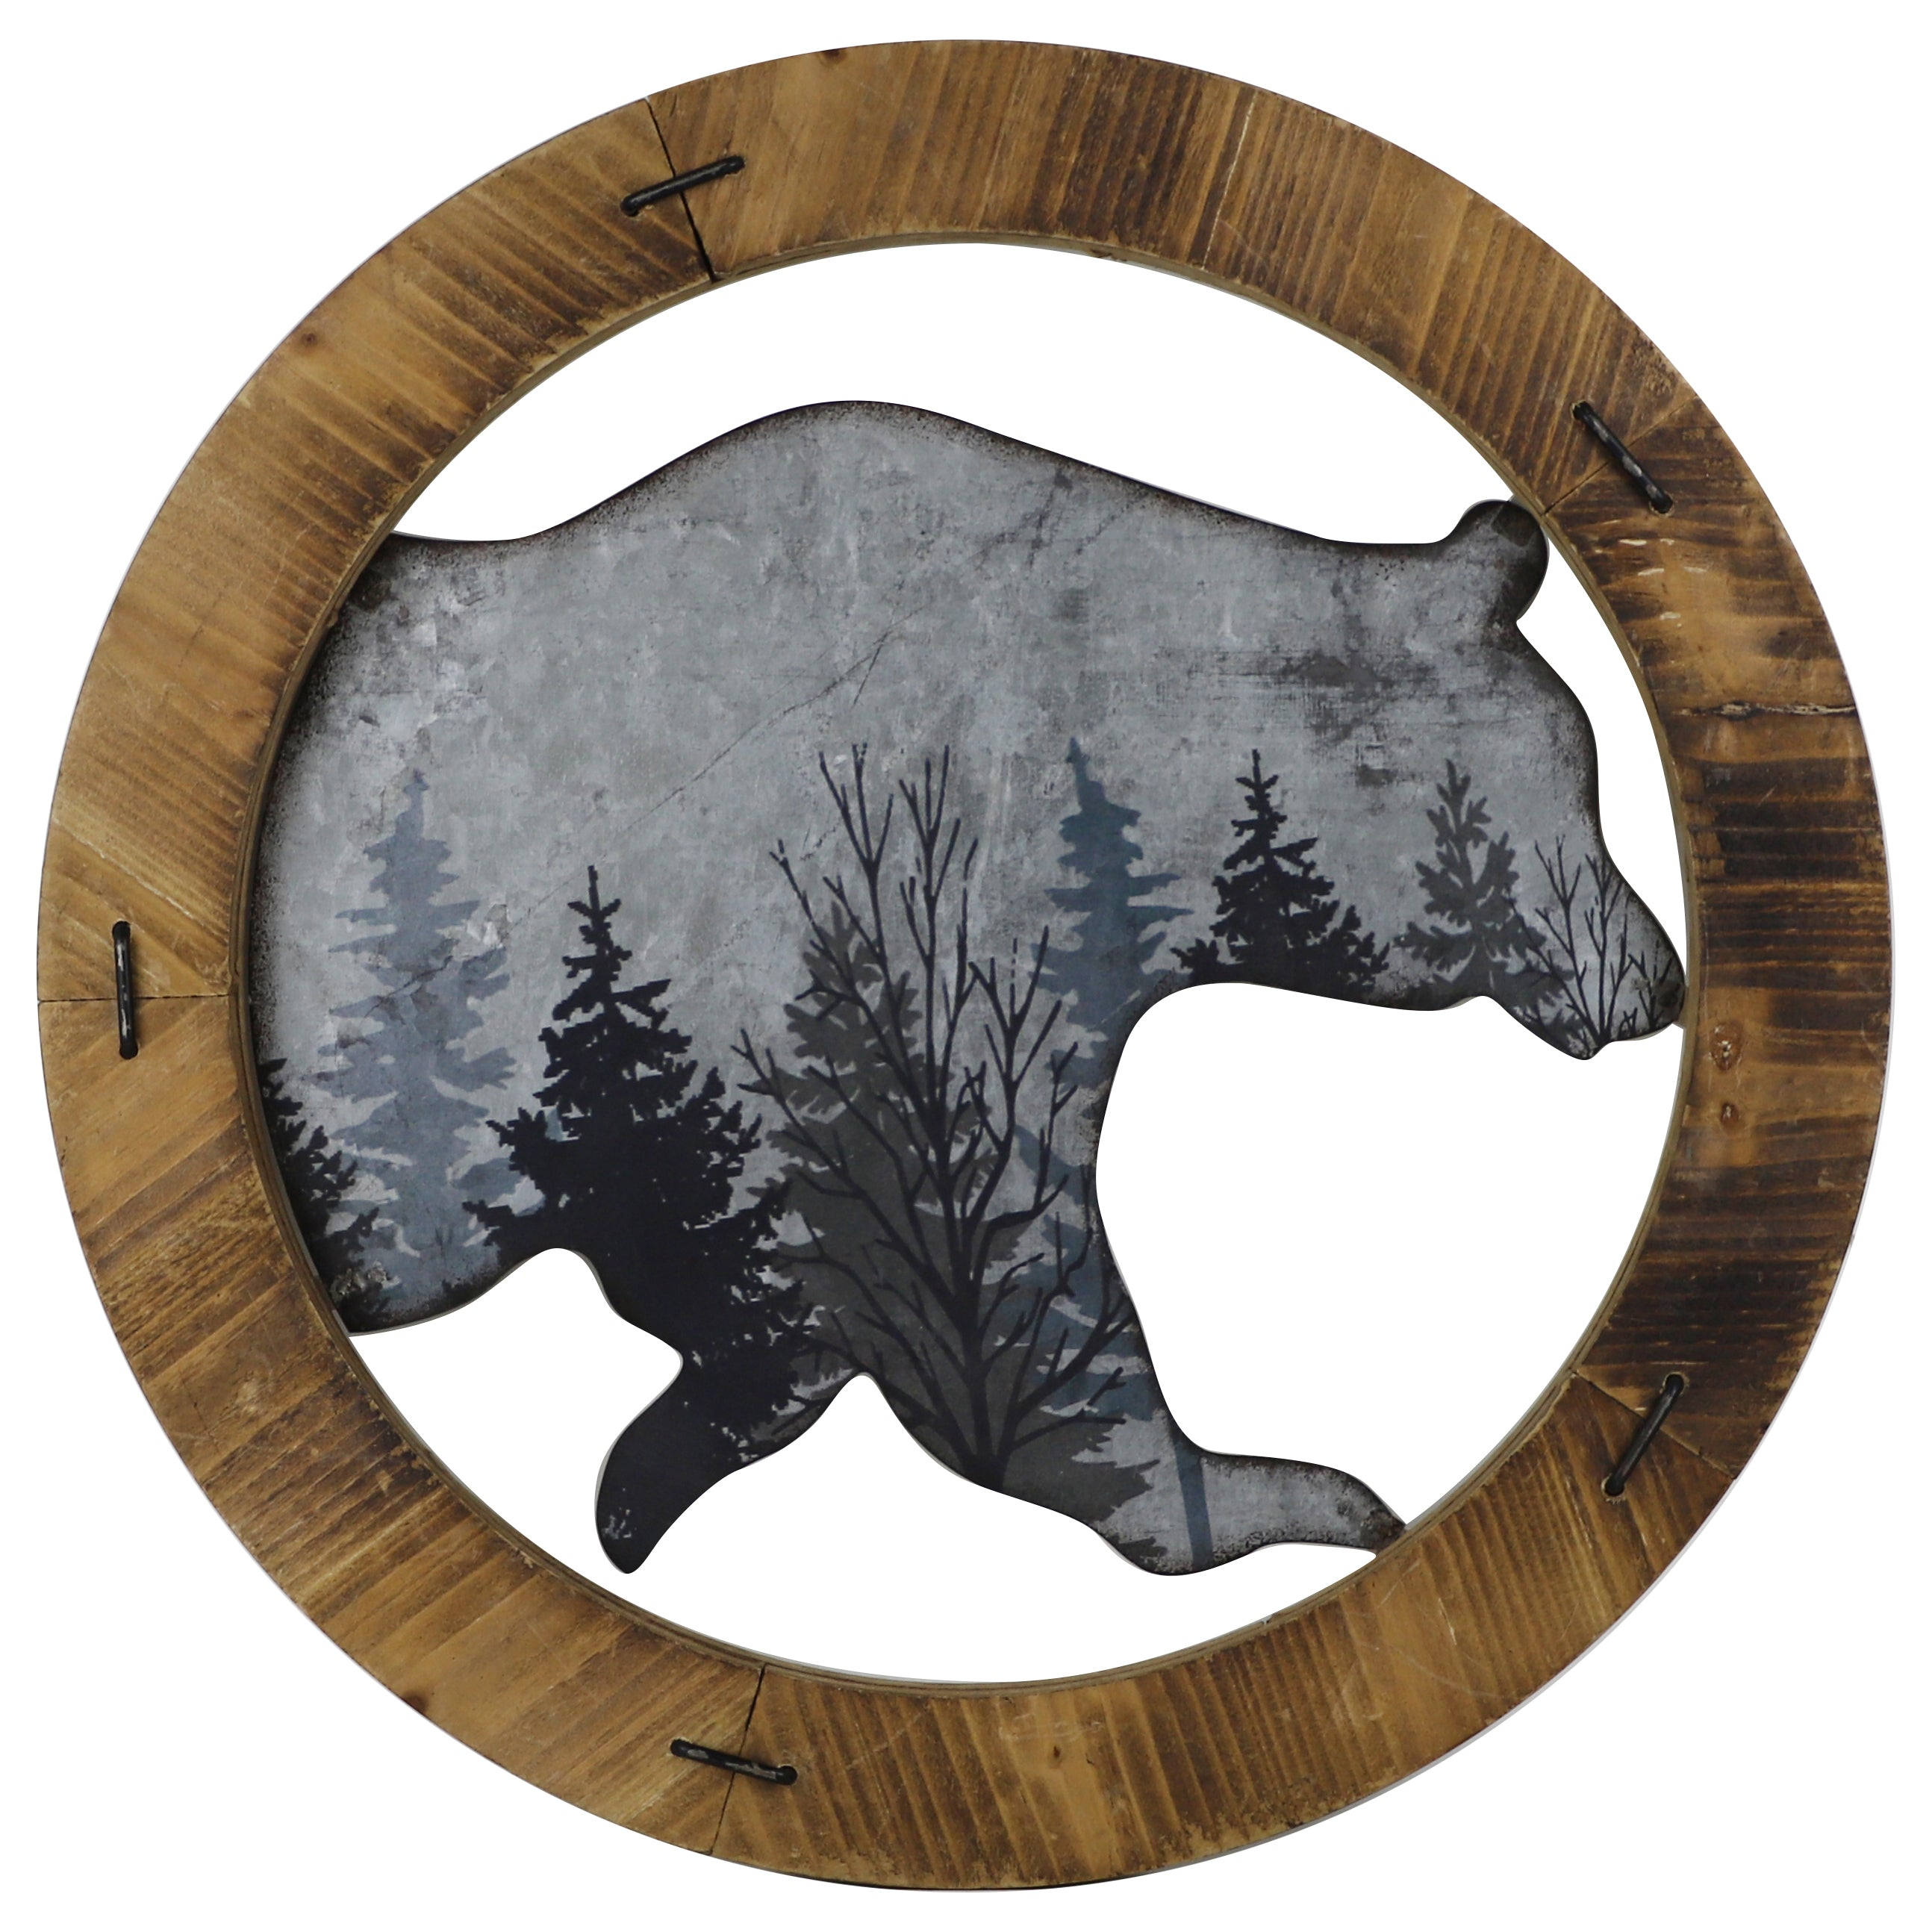 Rustic Wall Decor - Round Wood and Iron Bear Art by HiEnd Accents